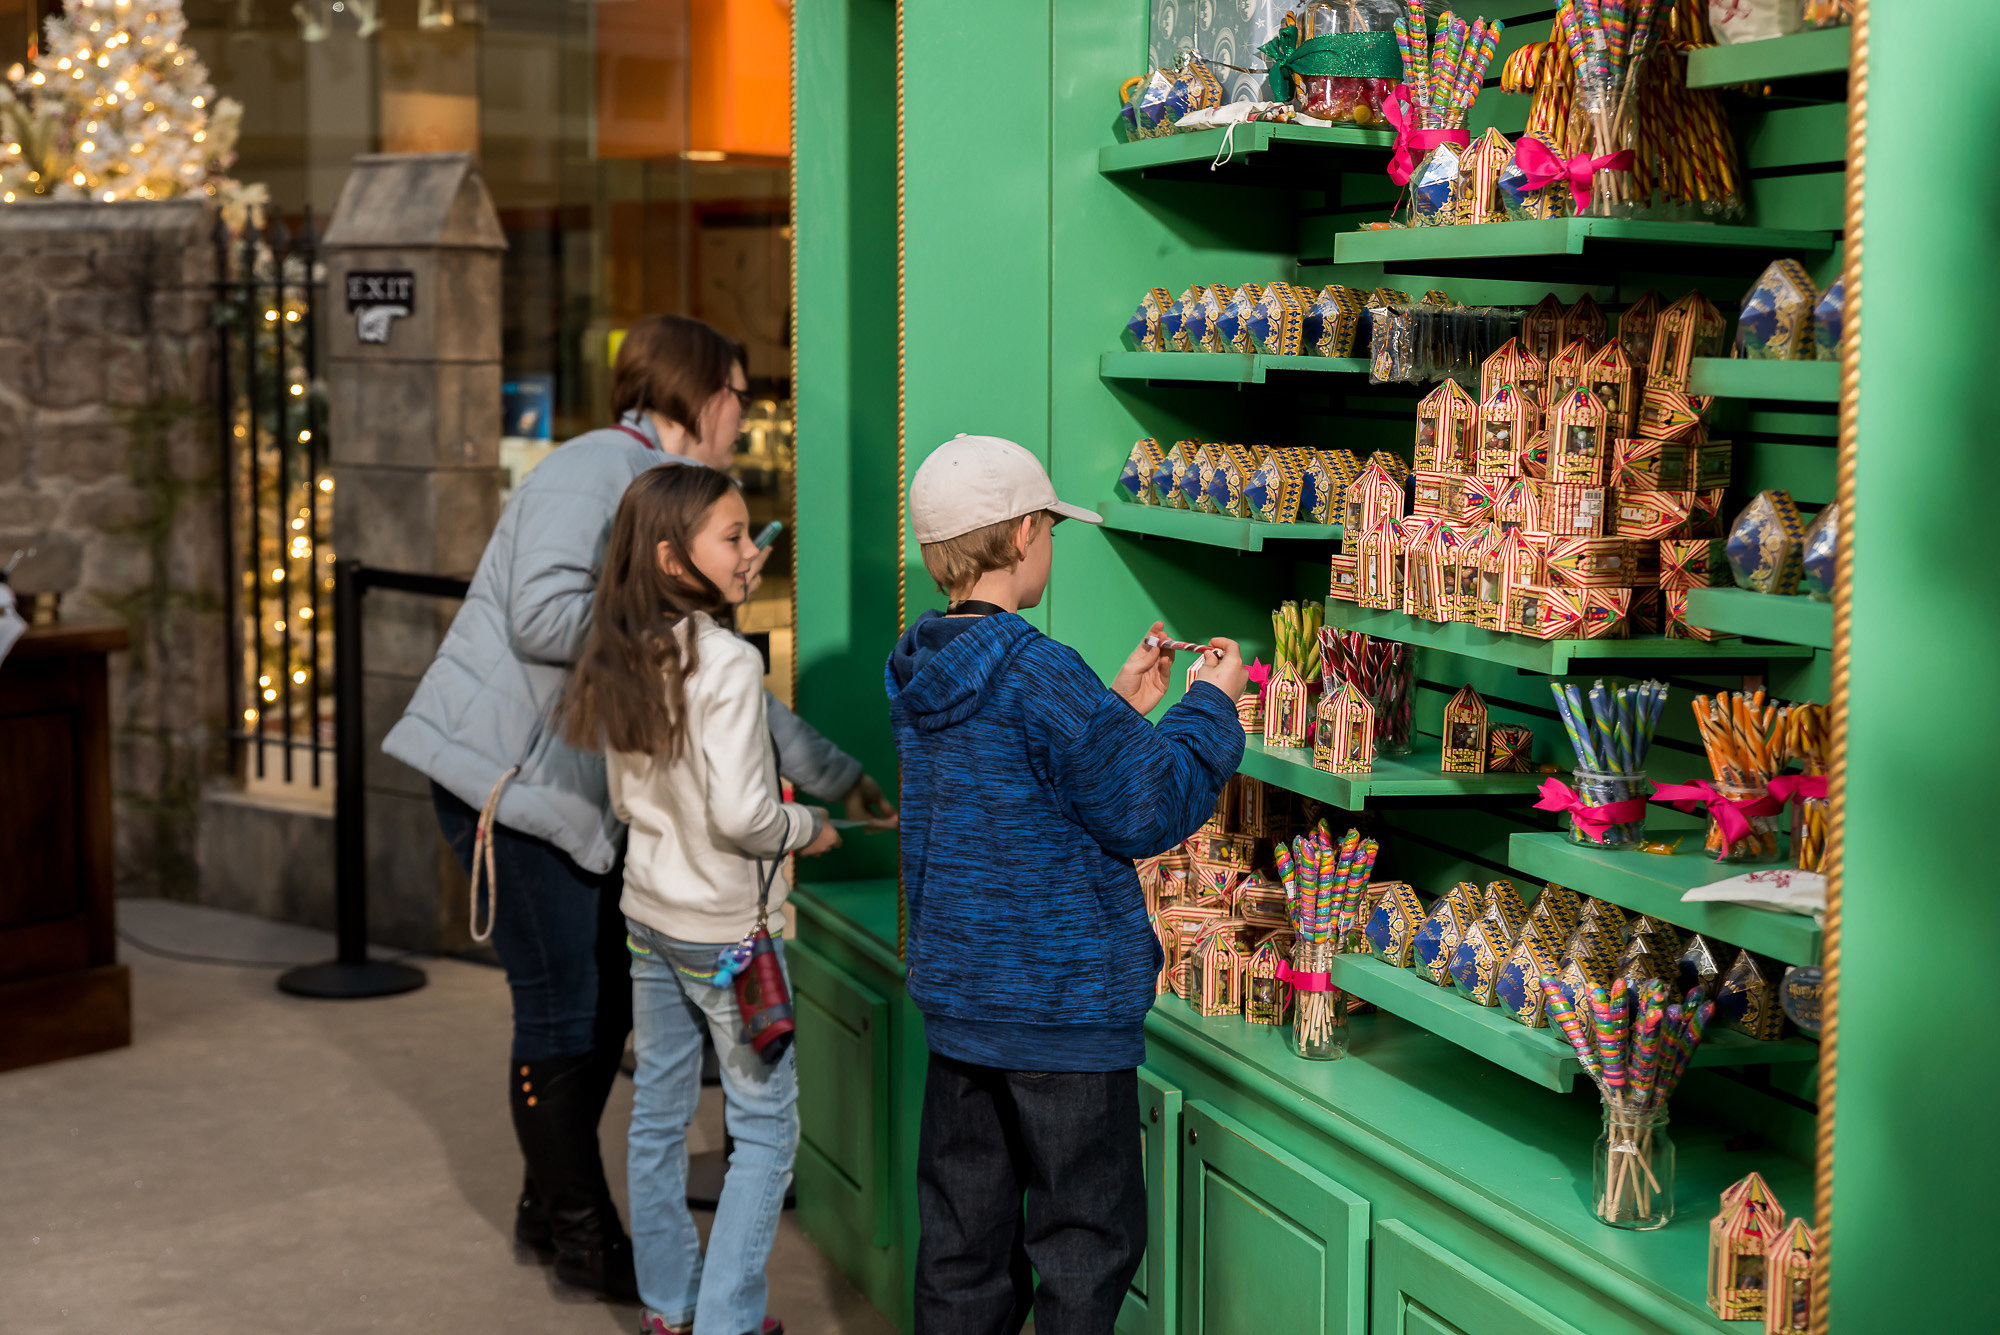 Visitors at Christmas in the Wizarding World will find authentic sweets from Honeydukes including Chocolate Frogs and Bertie Bott's Every Flavour Beans.